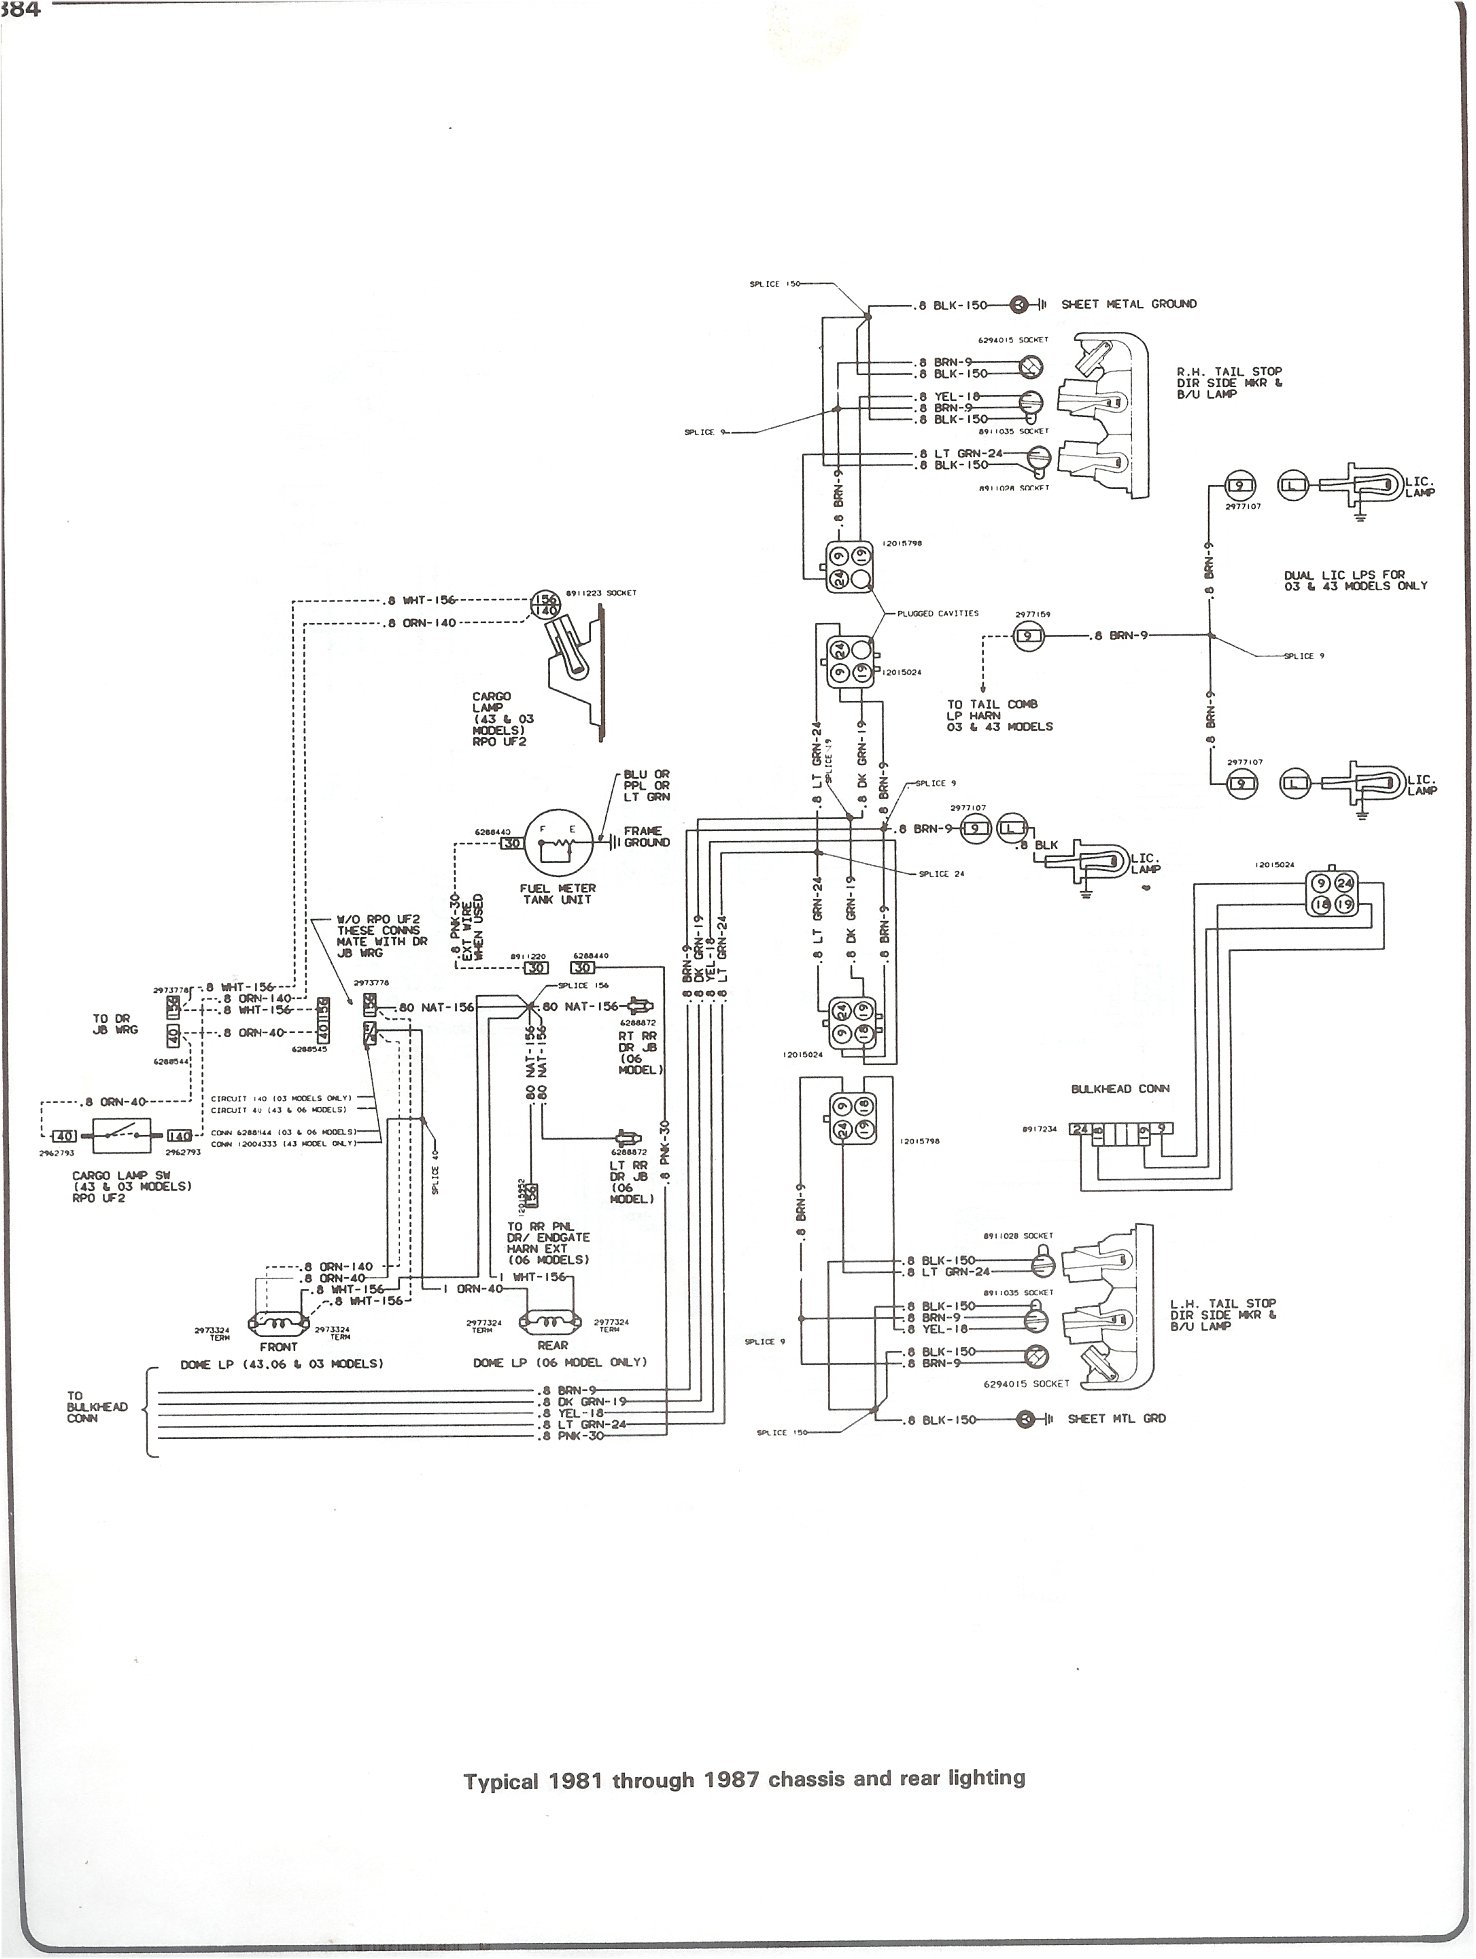 81 87_chass_rr_light complete 73 87 wiring diagrams 1986 chevy truck wiper motor wiring diagram at panicattacktreatment.co